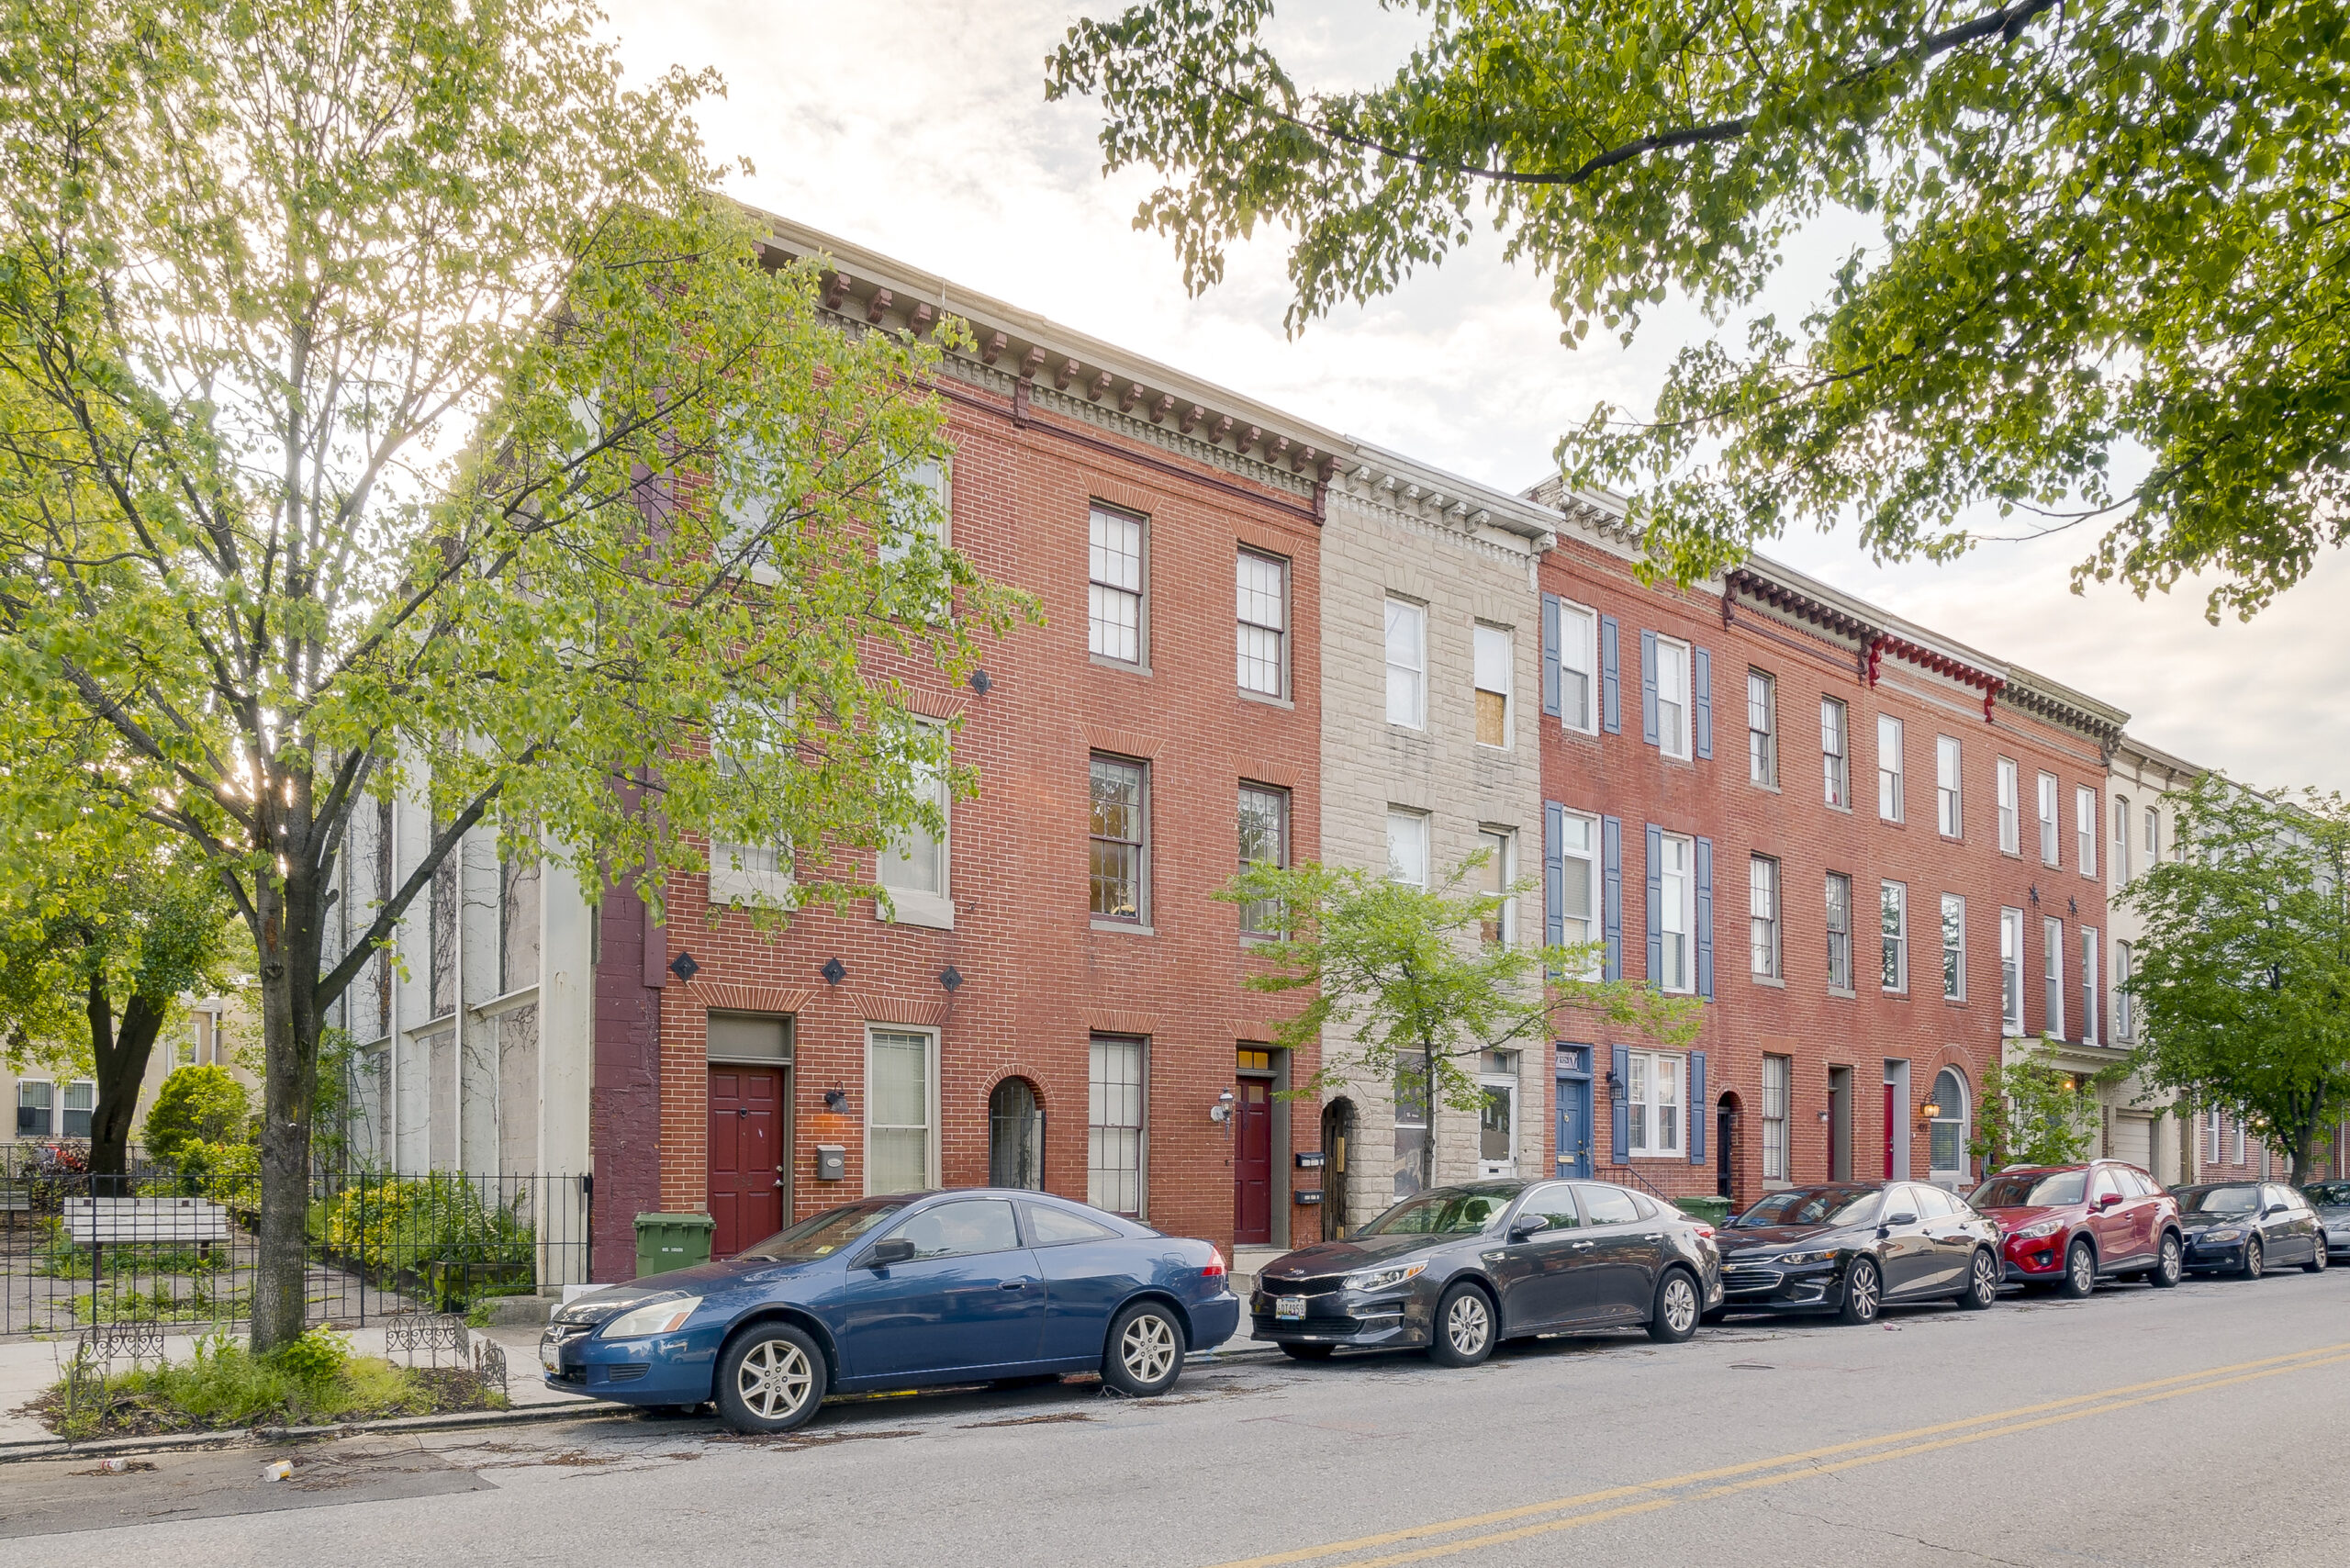 932 S Hanover:  3 Bedroom-3 Bath Rental in Federal Hill